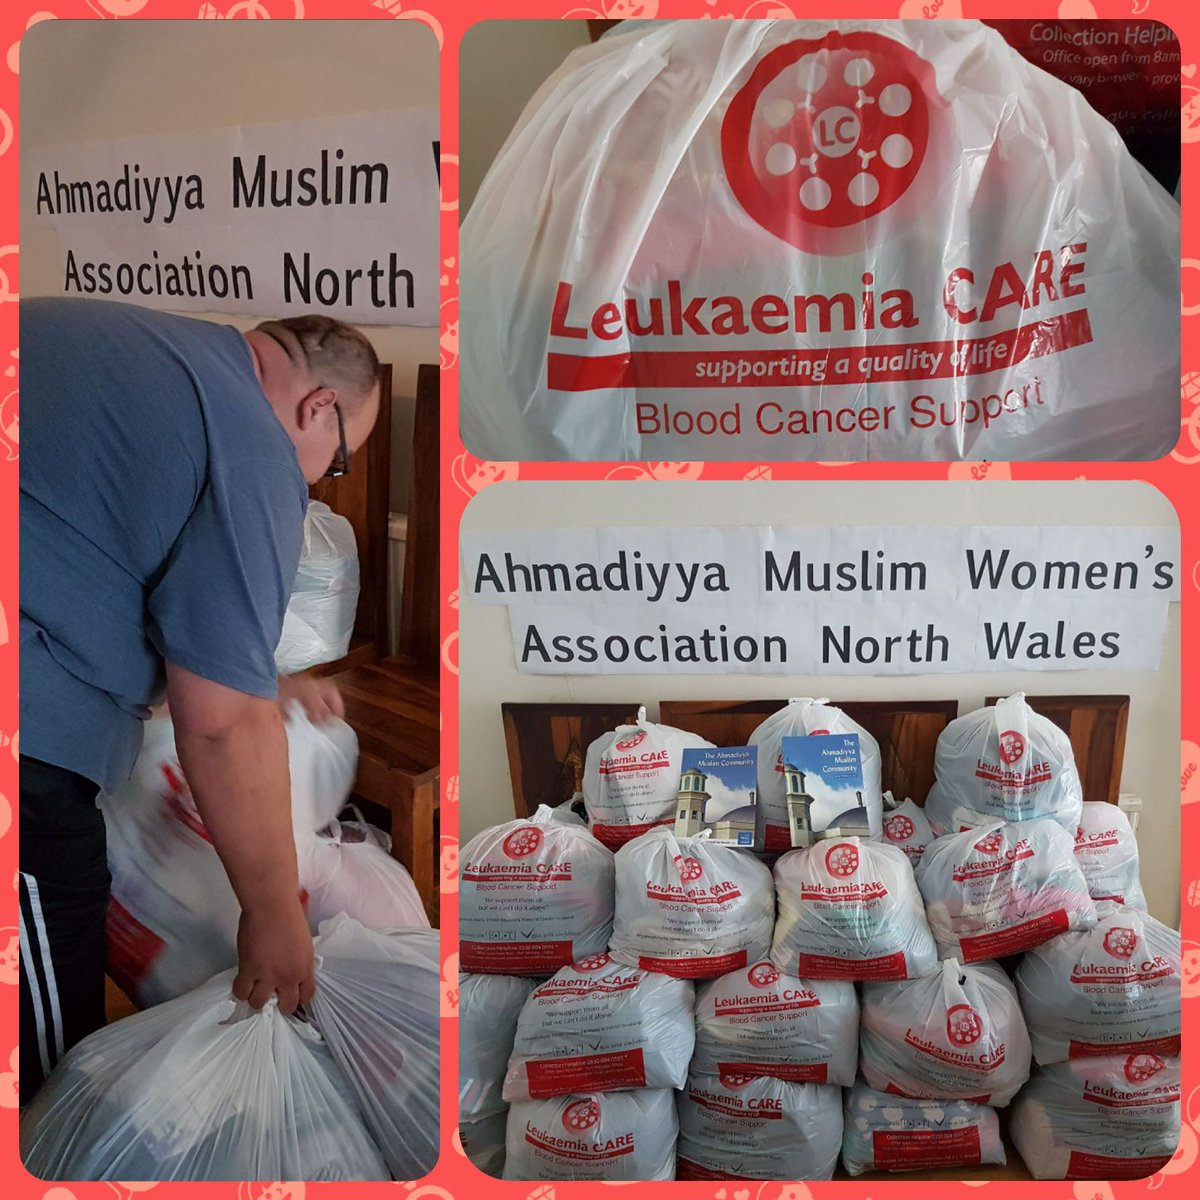 #Ahmadi #Muslim  Ladies North #Wales donated 21 bags of clothing to support @LeukaemiaCareUK<br>http://pic.twitter.com/MujZyP4NVS